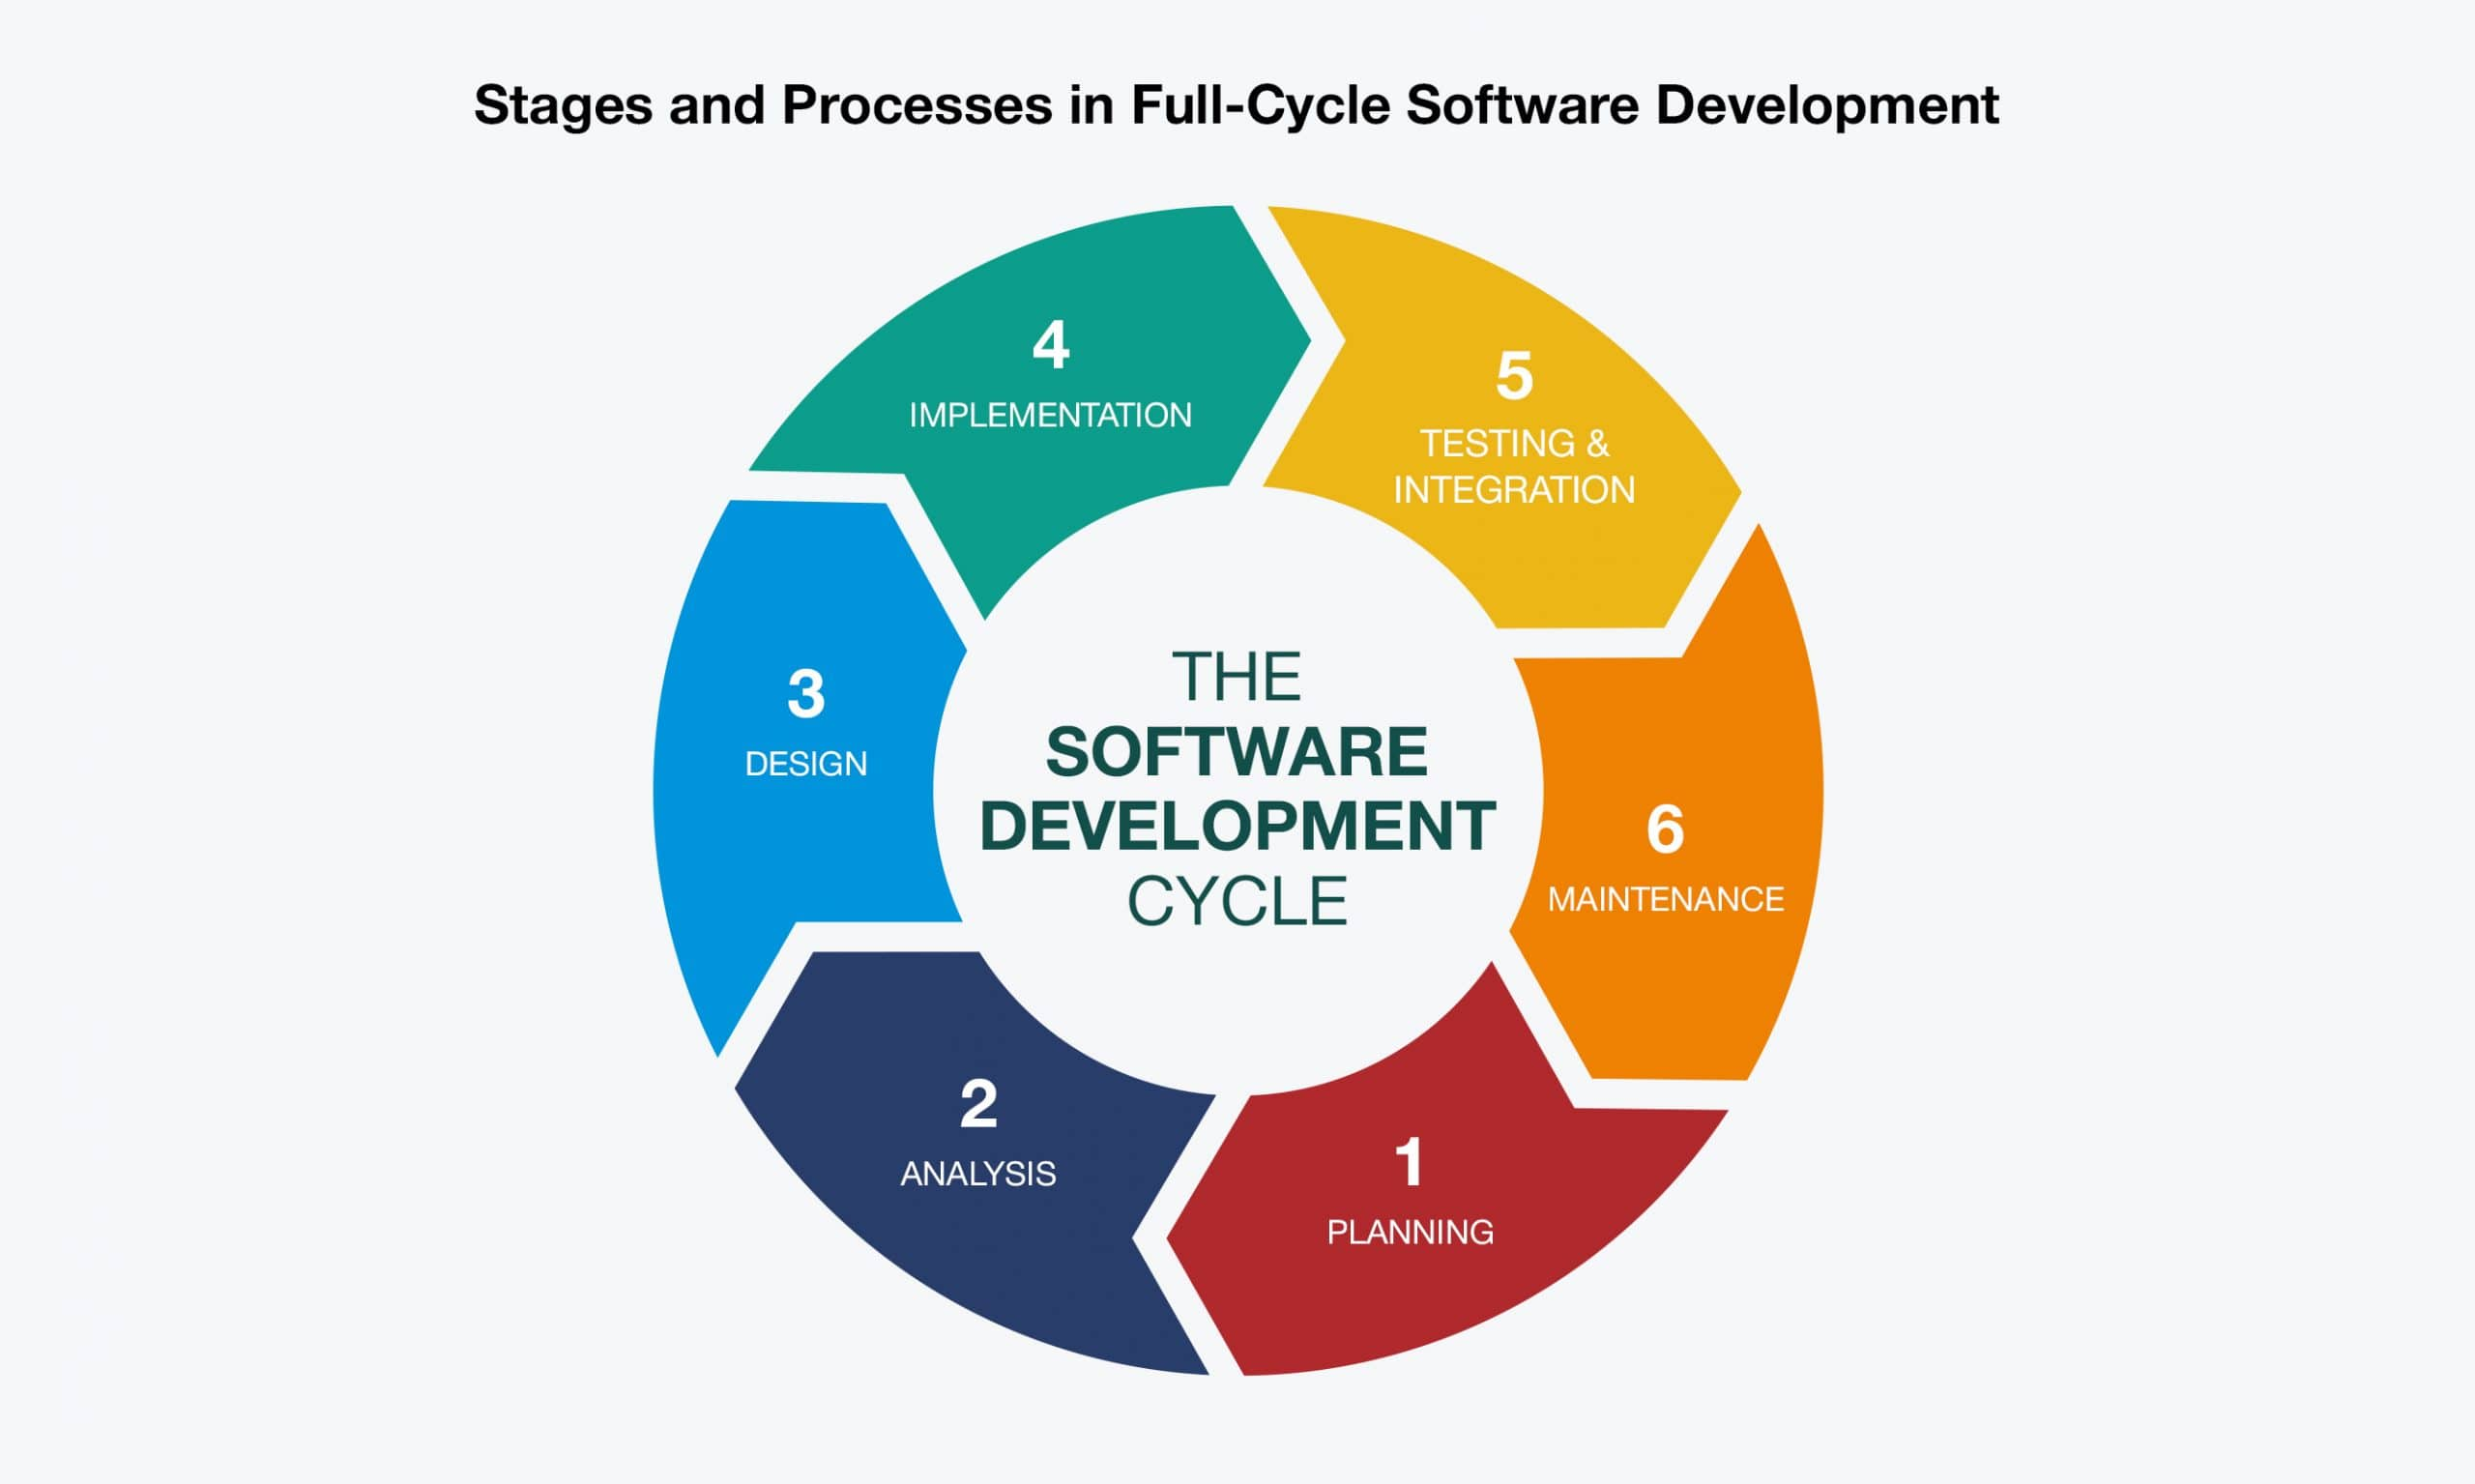 Stages and Processes in Full-Cycle Software Development